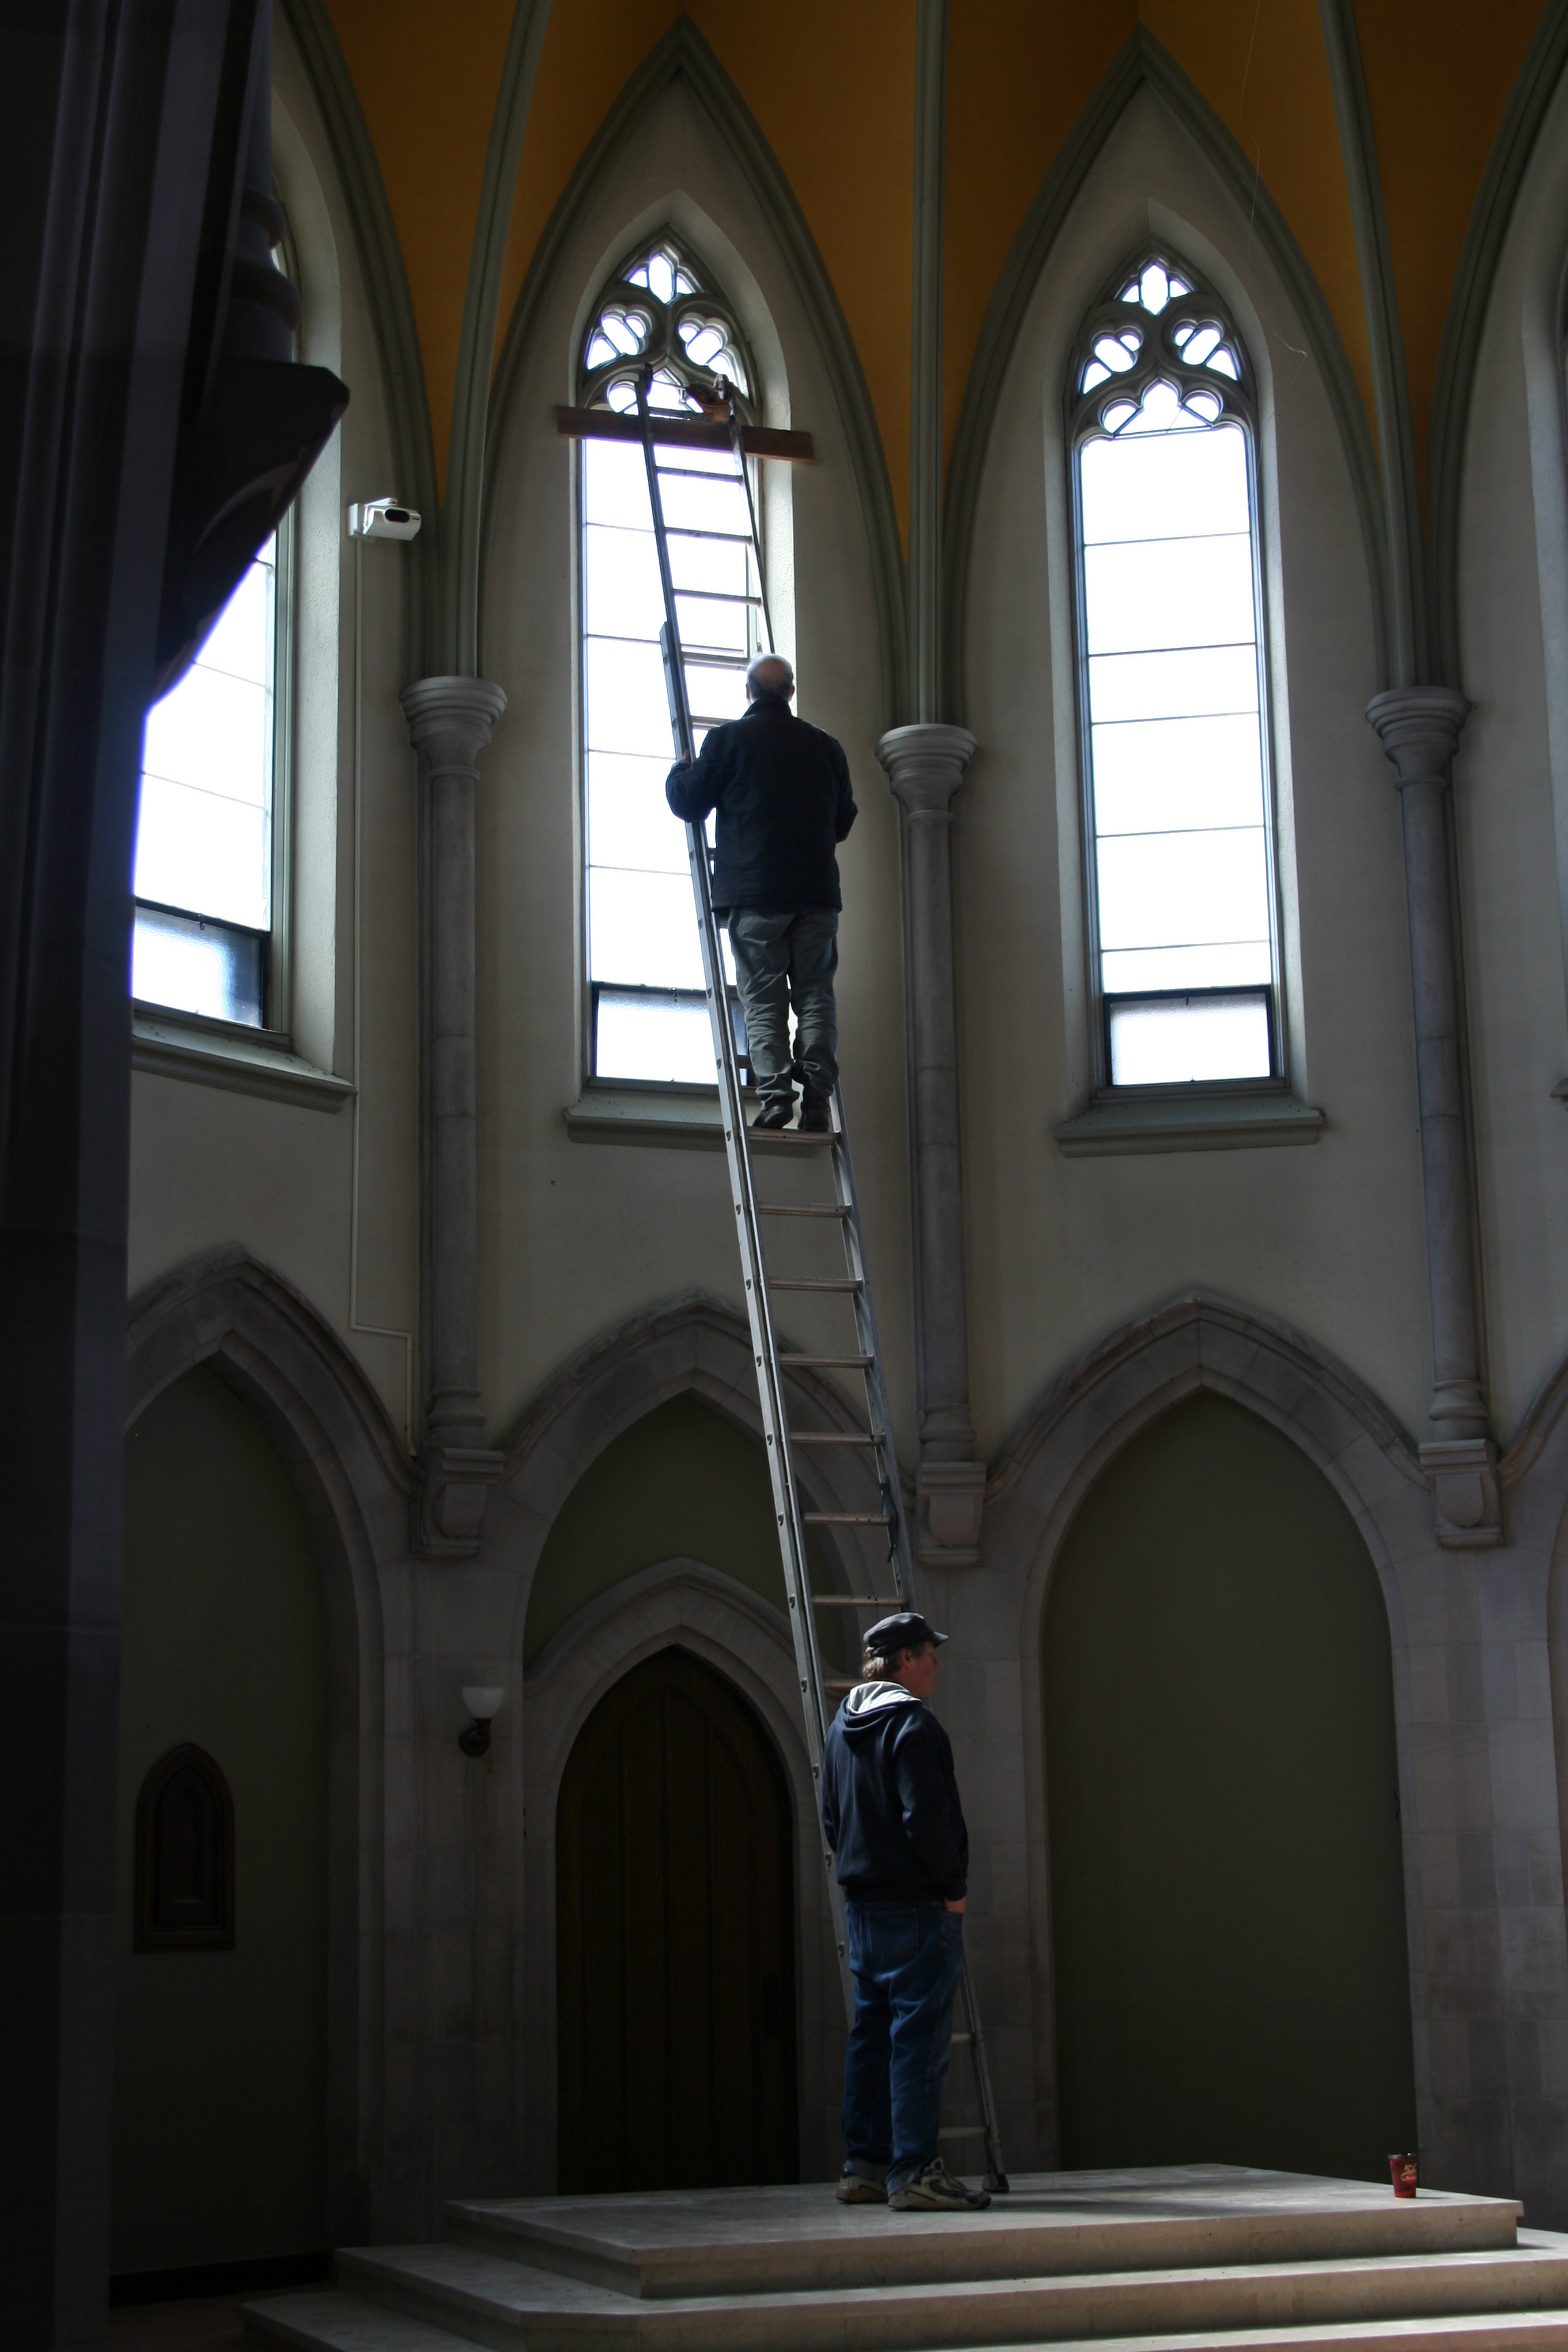 Public Energy Artistic Producer Bill Kimball helping Artist Robert Edmonson install his kinetic sculpture in the Chapel. Photo: Paul Oldham